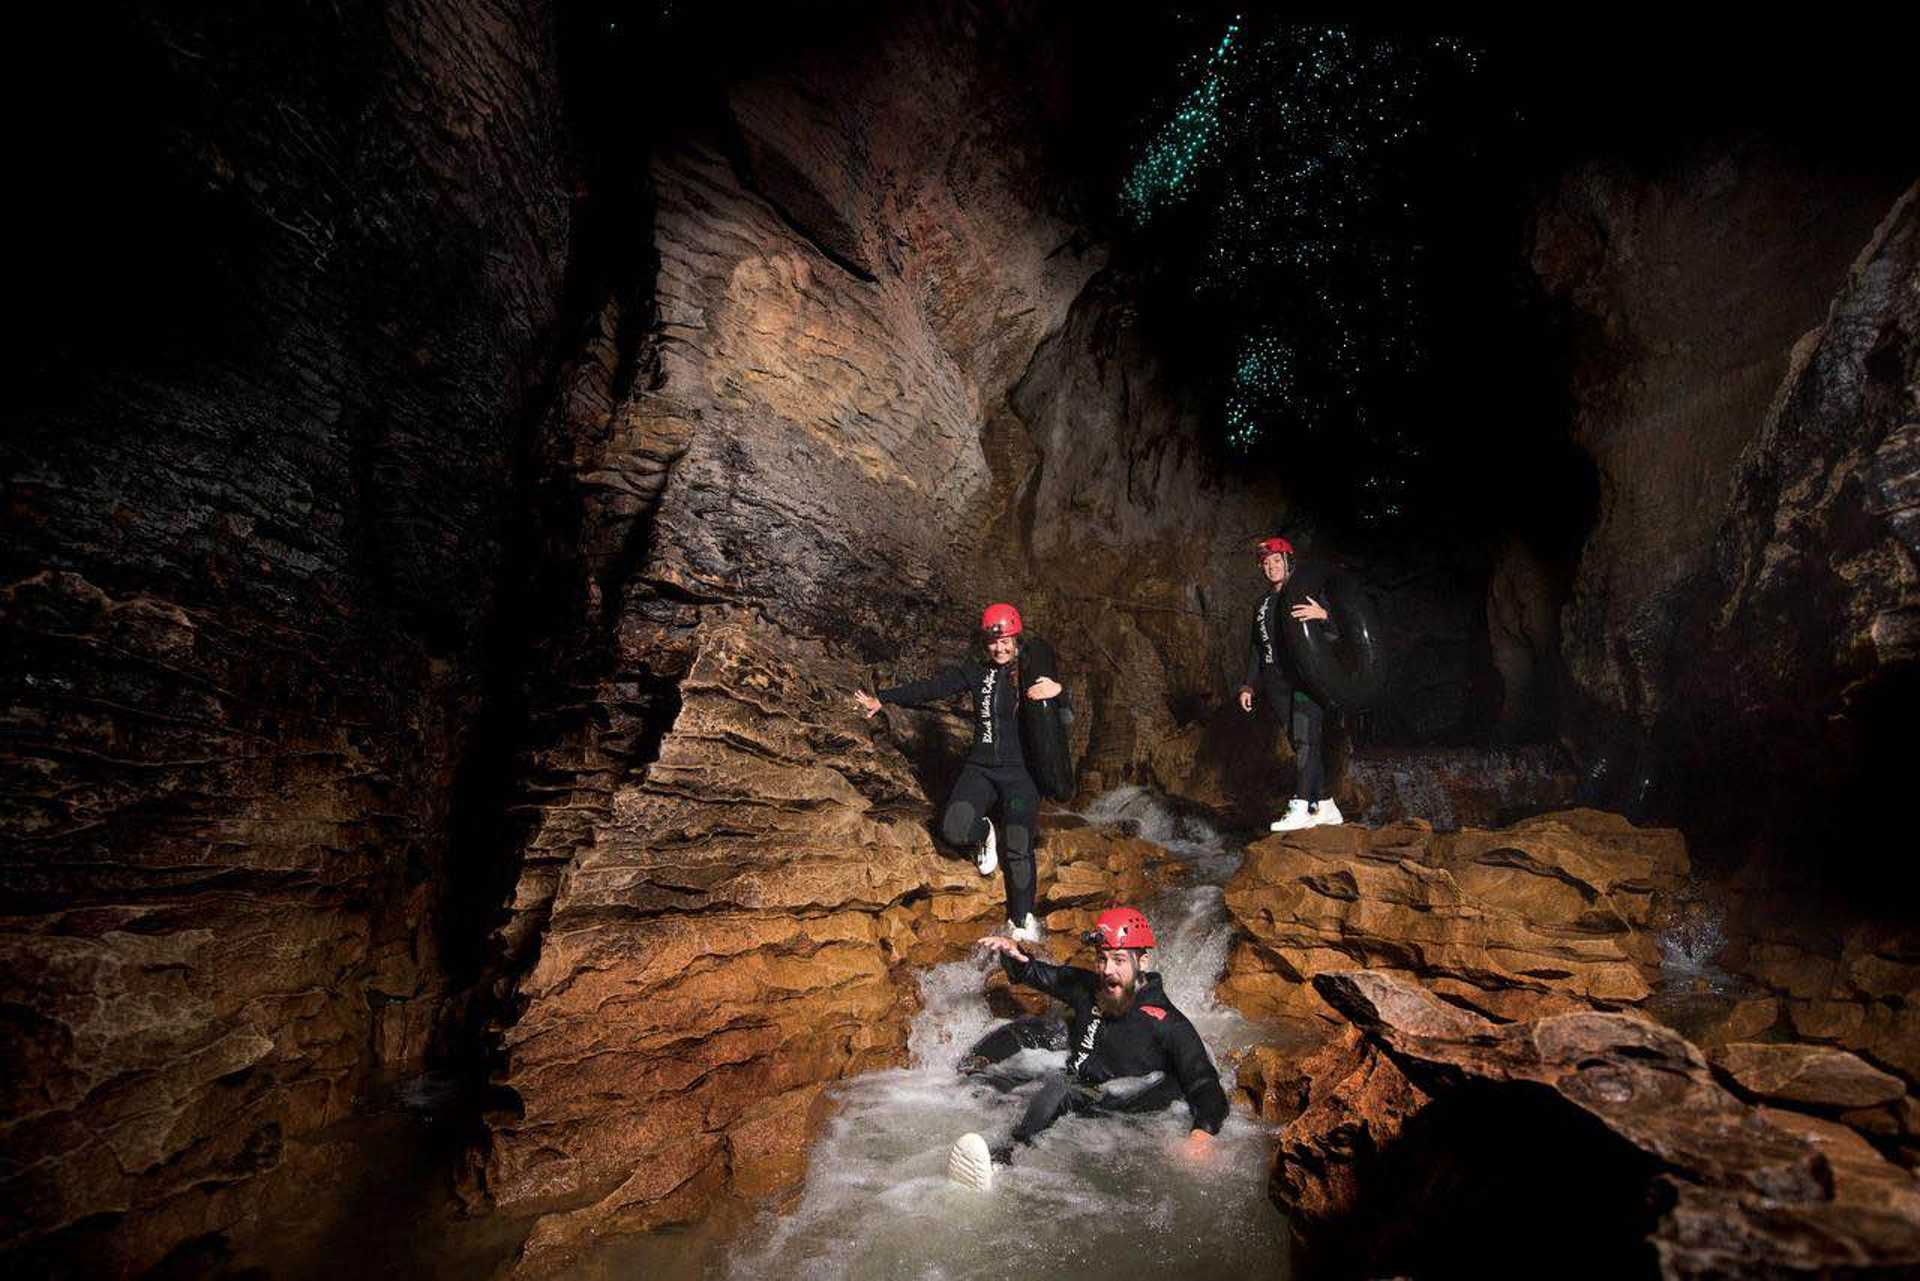 Who would've thought you could go tubing in an underground river?